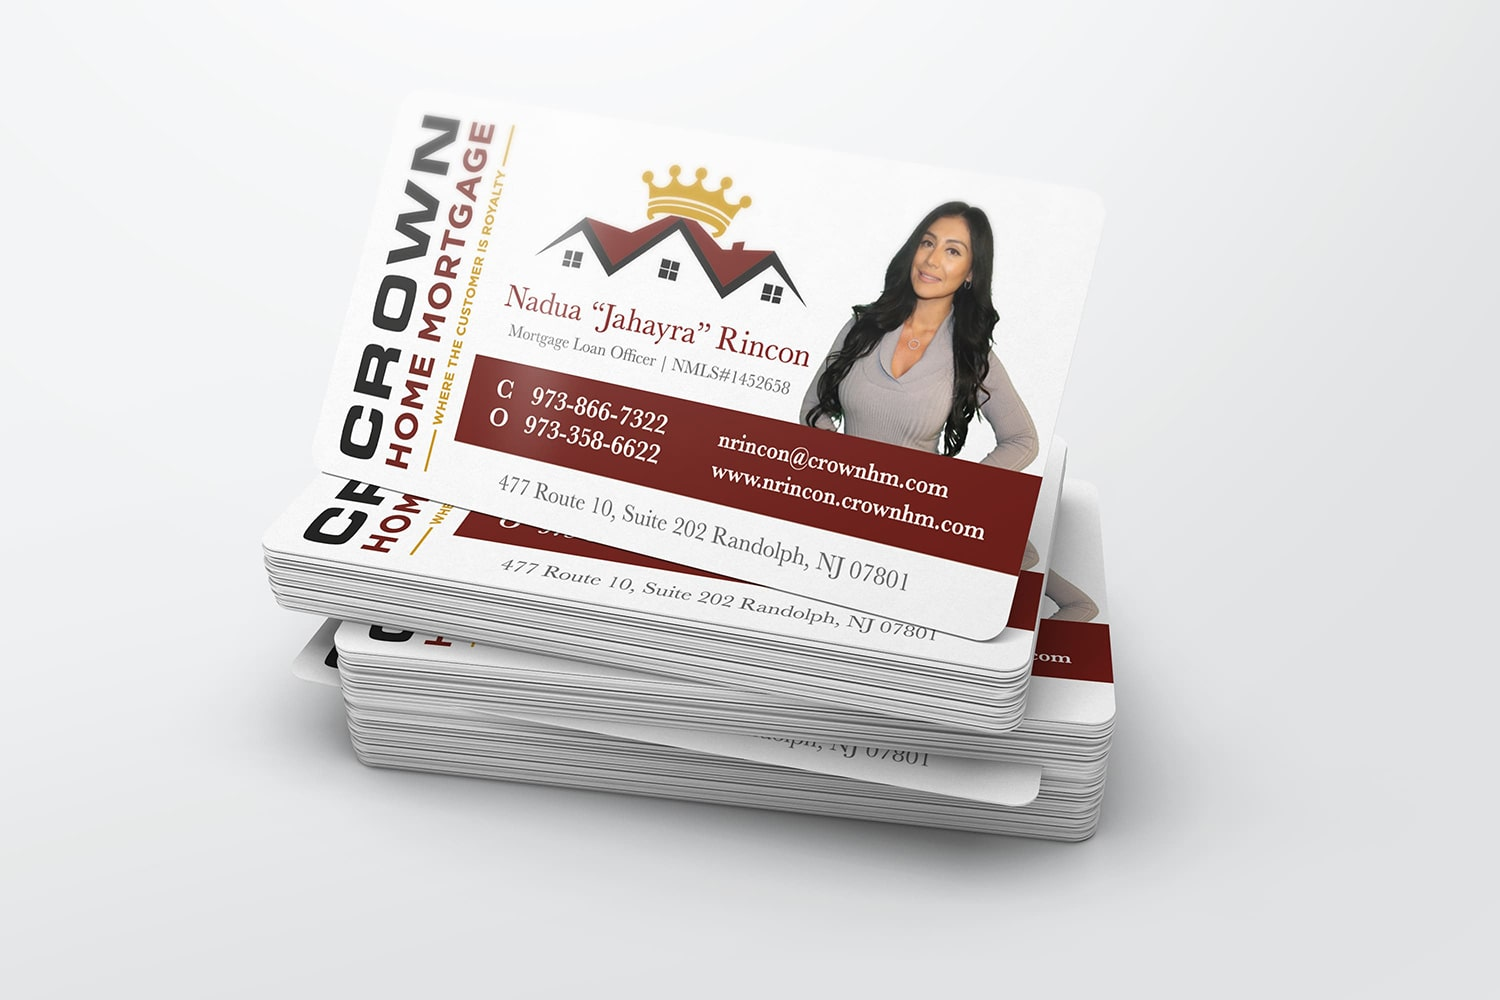 CHM executive cards with Photo